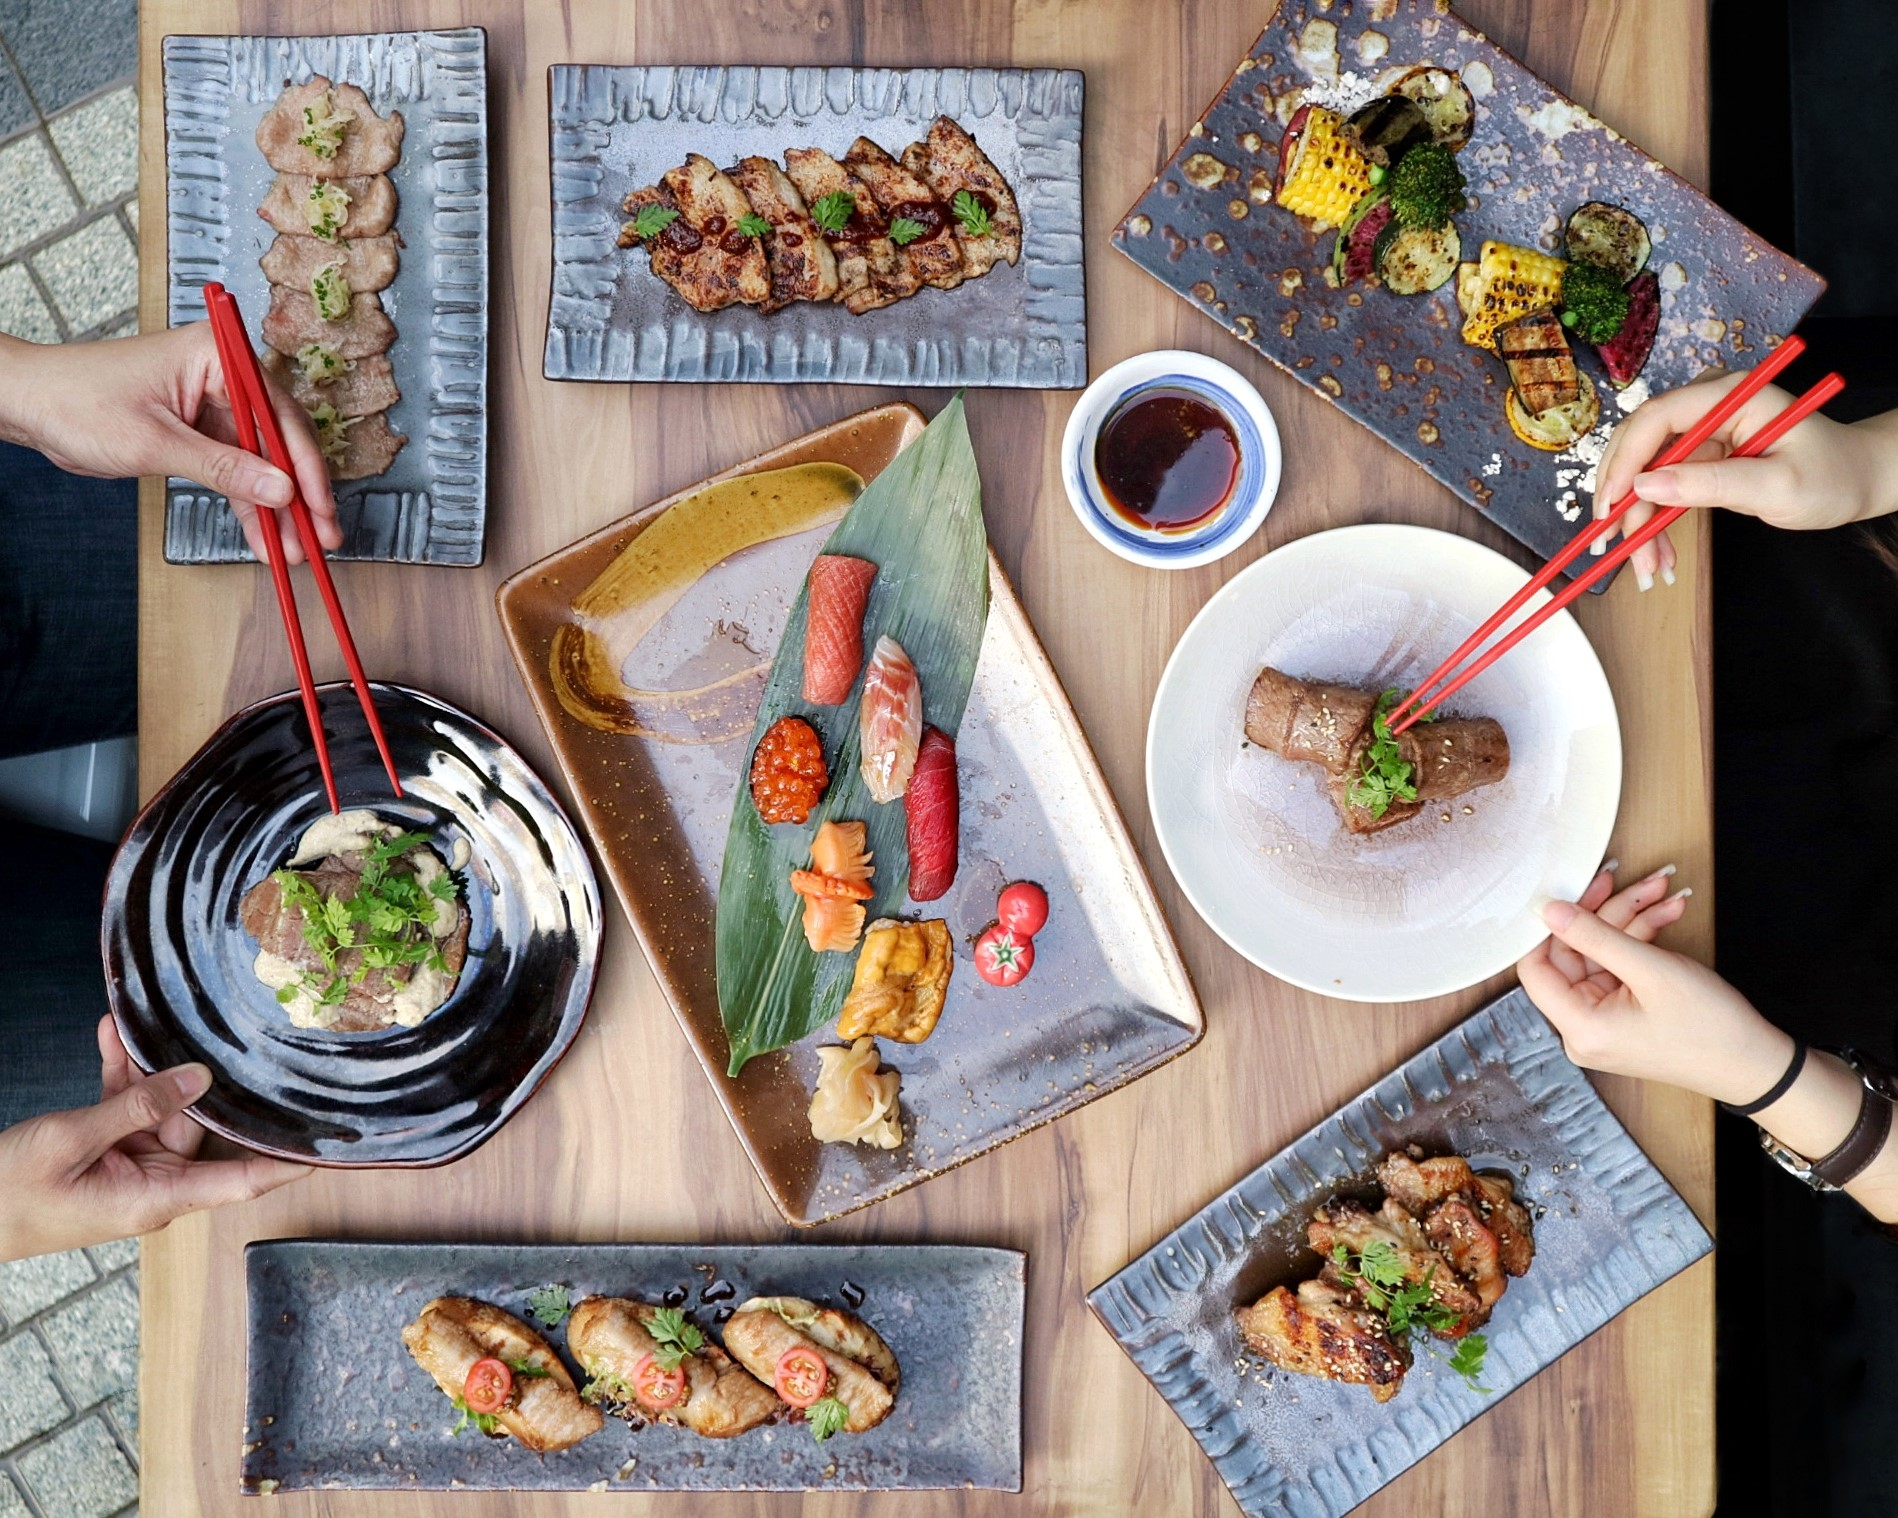 (NEW) Cast Iron: Modern Japanese Restaurant with Premium Sashimi & Astonishing Grills